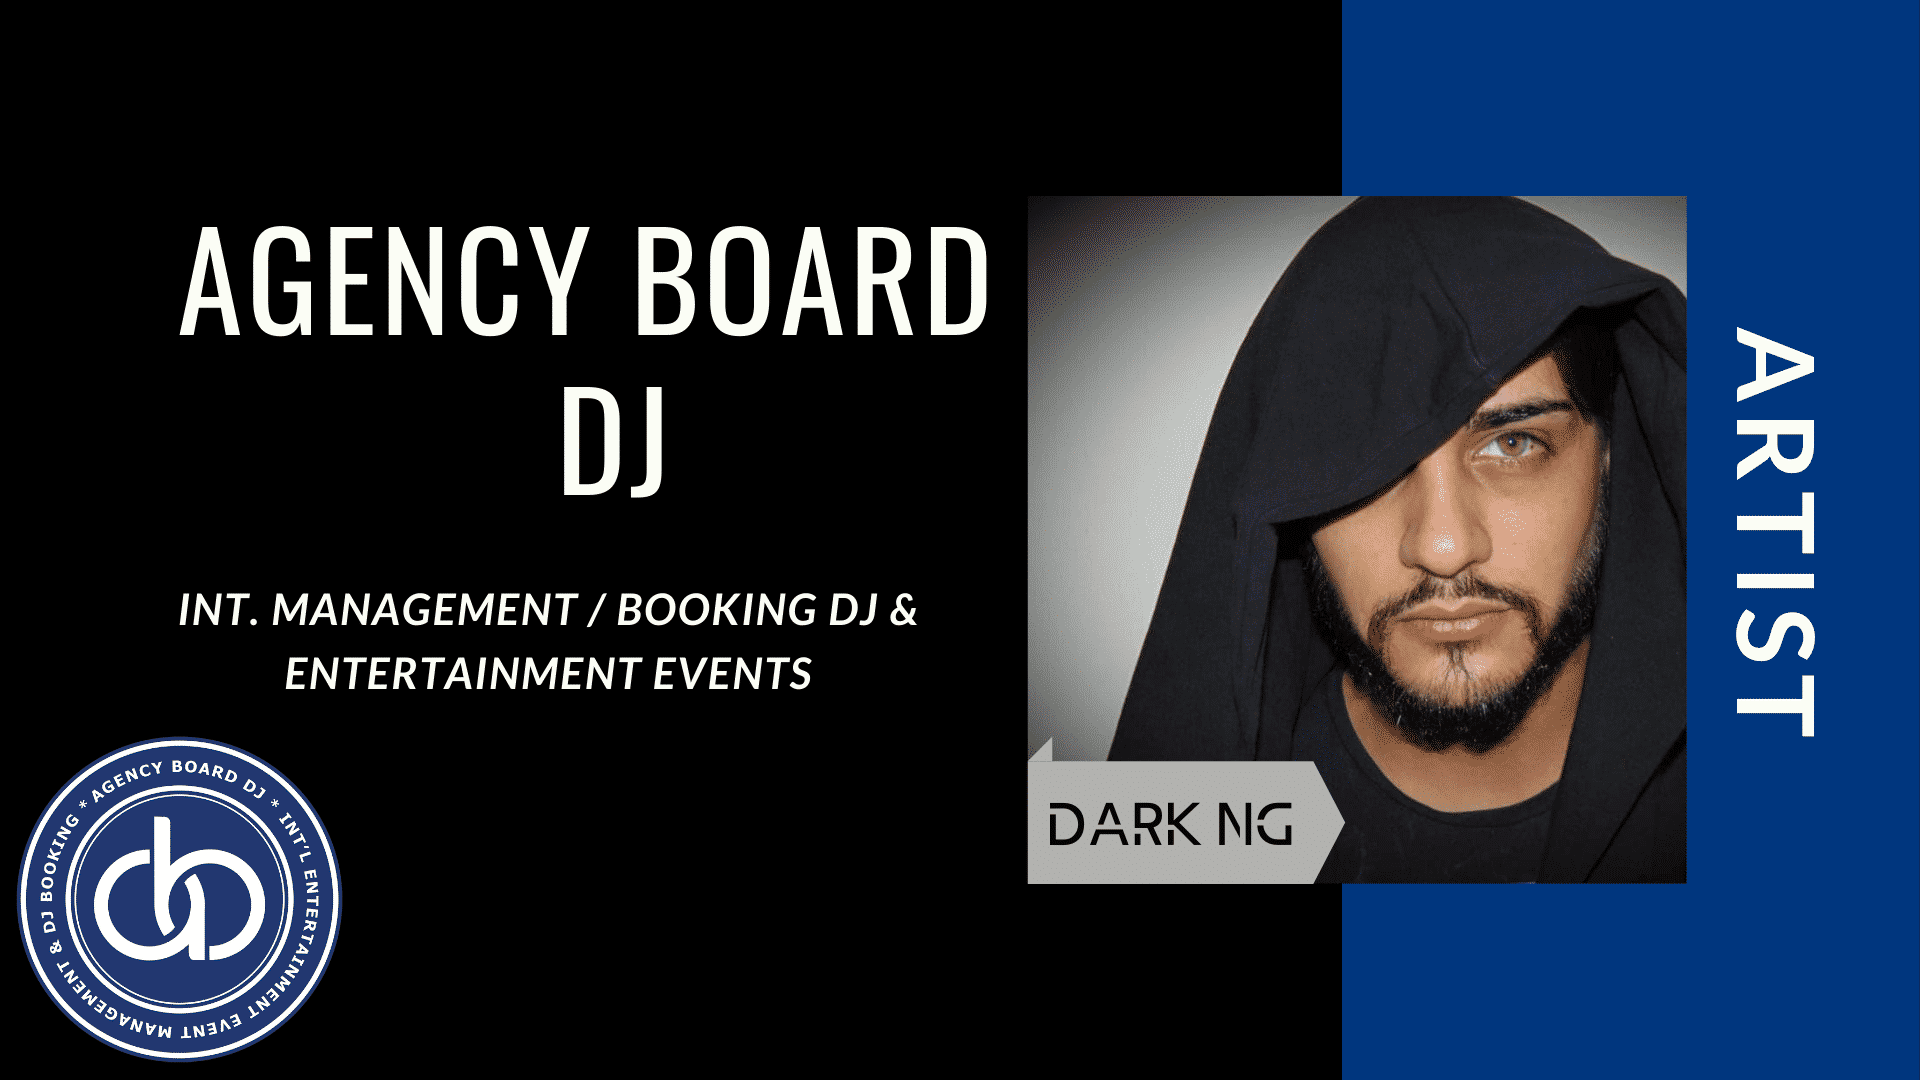 DARK-NG,Artist, DJ Booking Agency